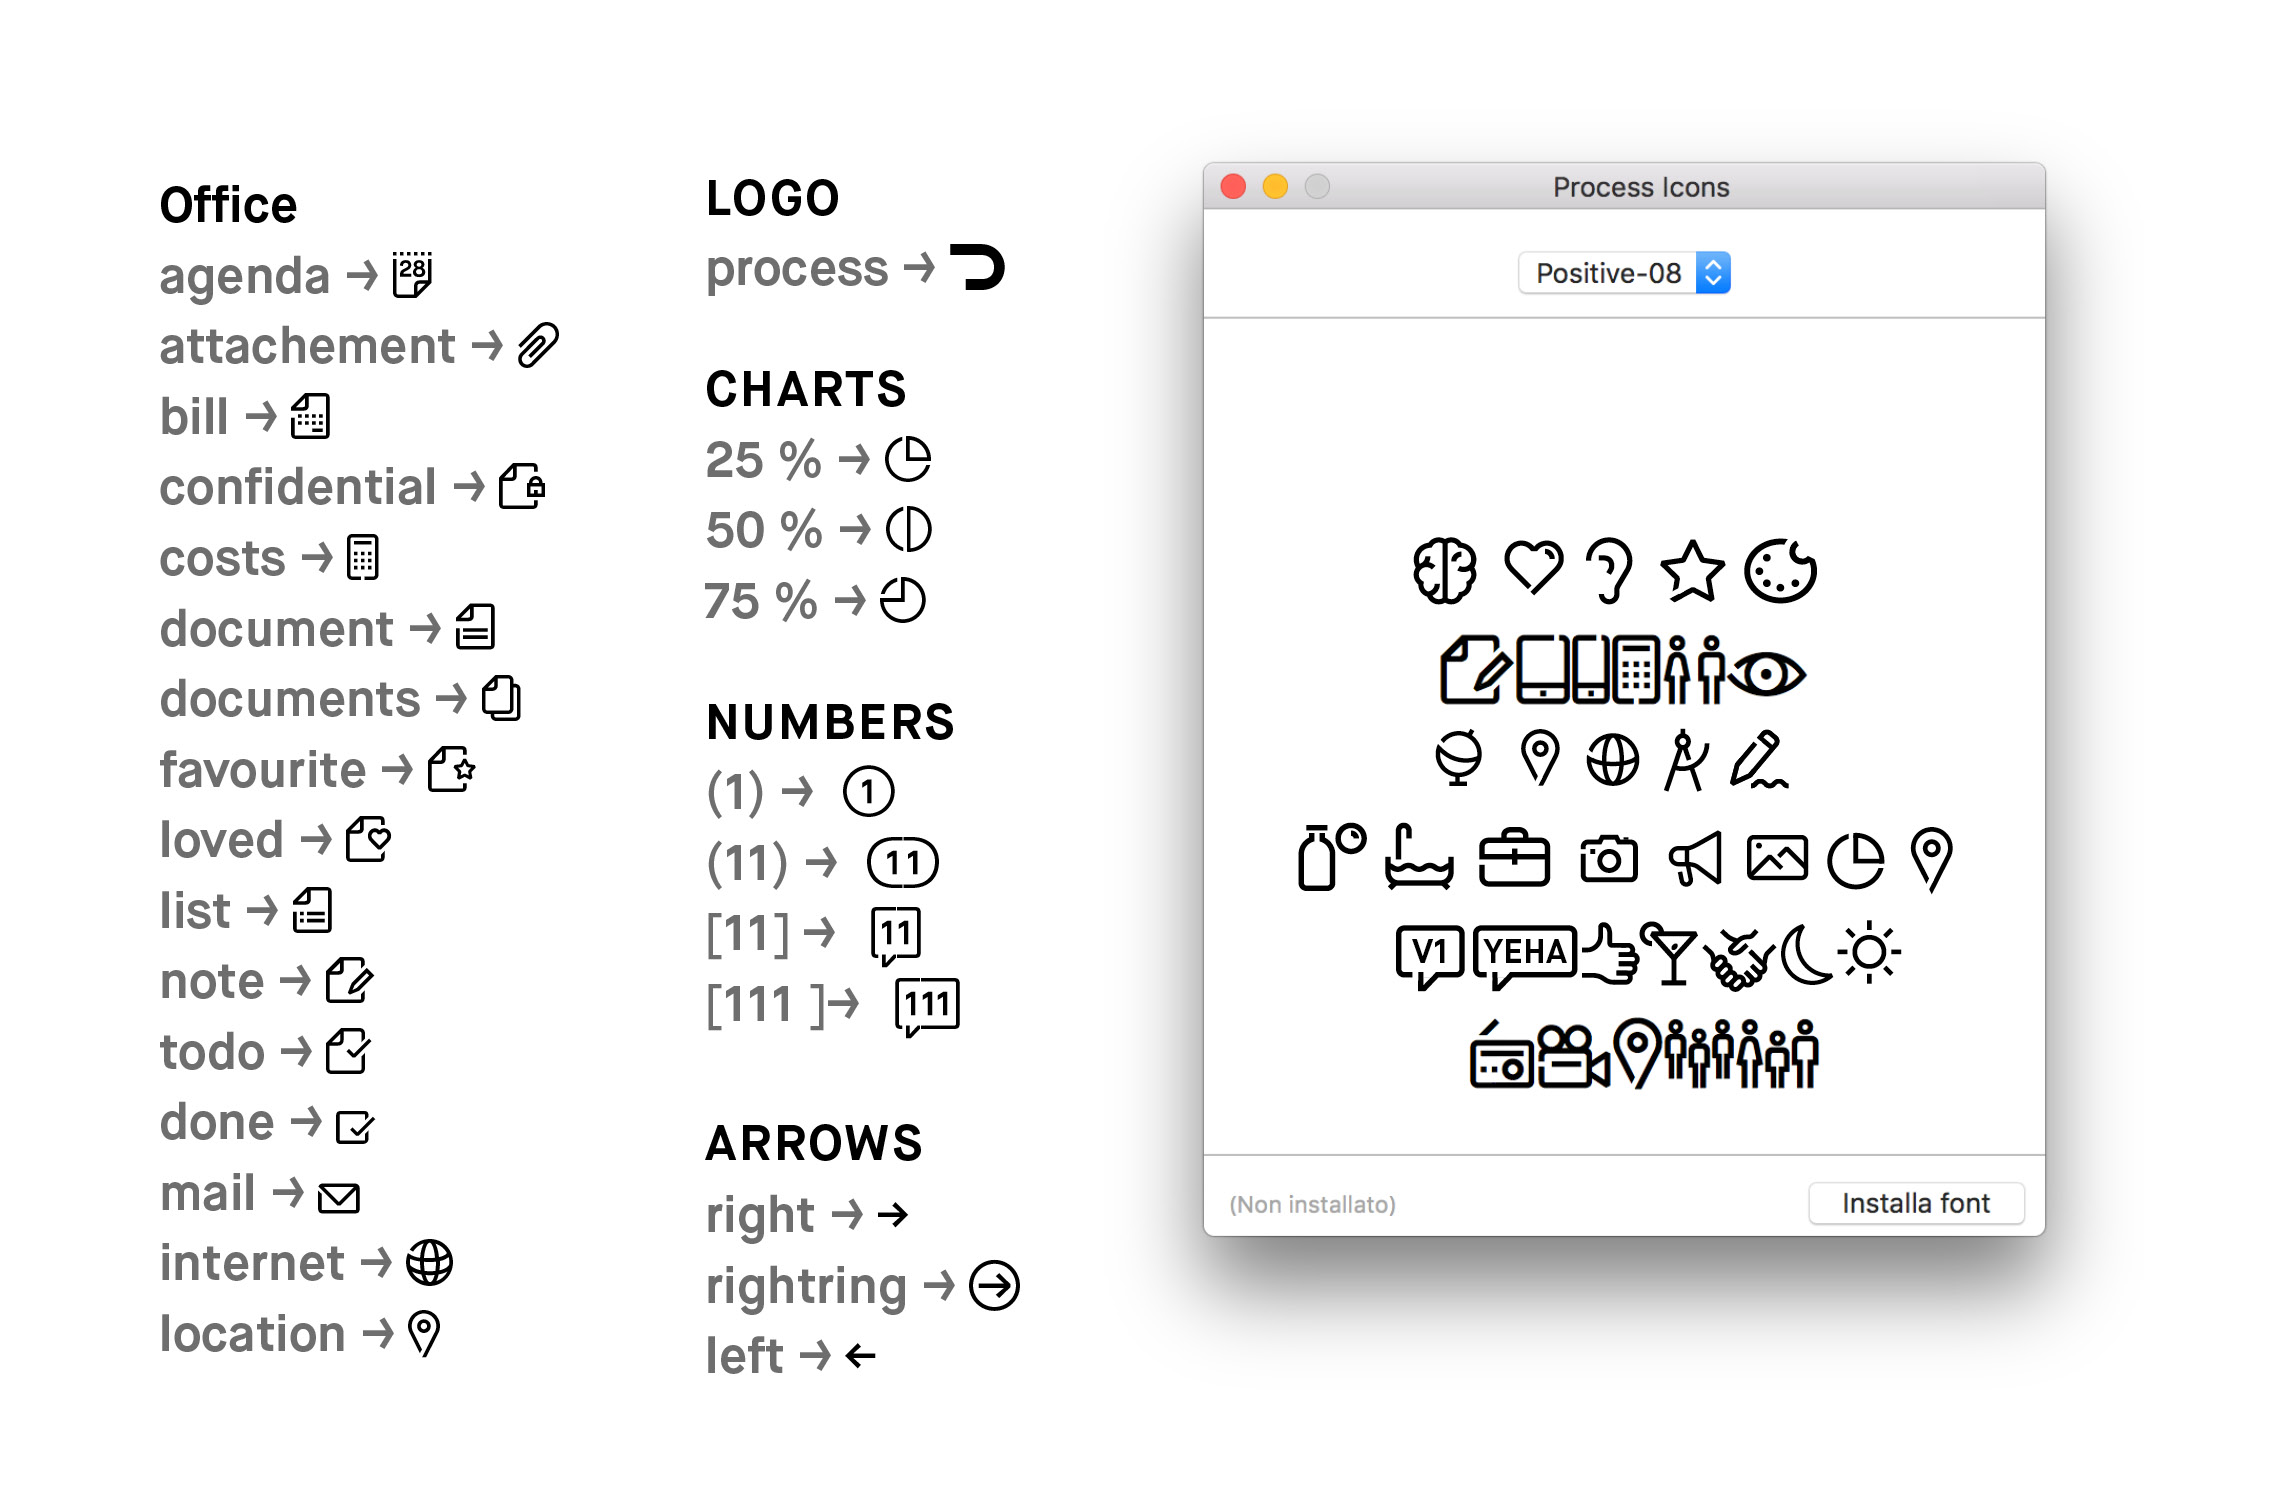 picto-font-for-process-icons-together-with-christine-gertsch